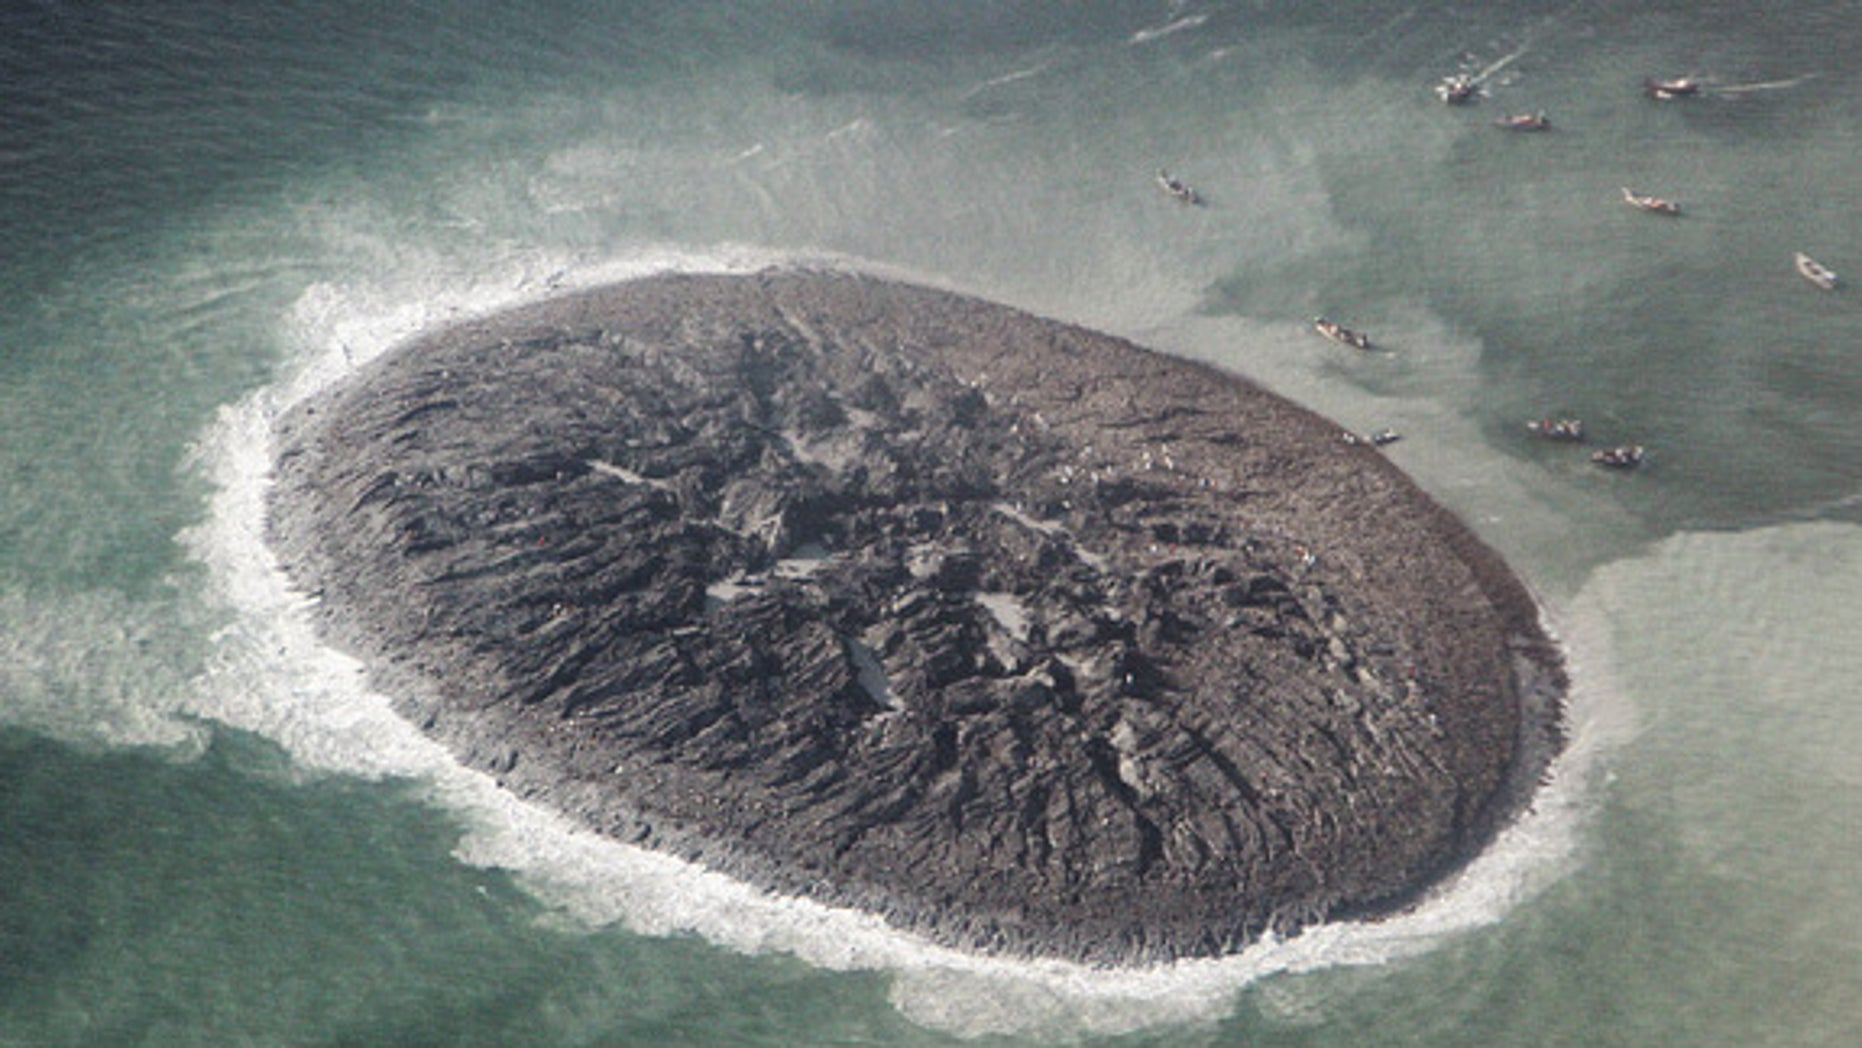 An aerial photo from Pakistan's National Institute of Oceanography suggests the new island is 60 to 70 feet (15 to 20 meters) tall.